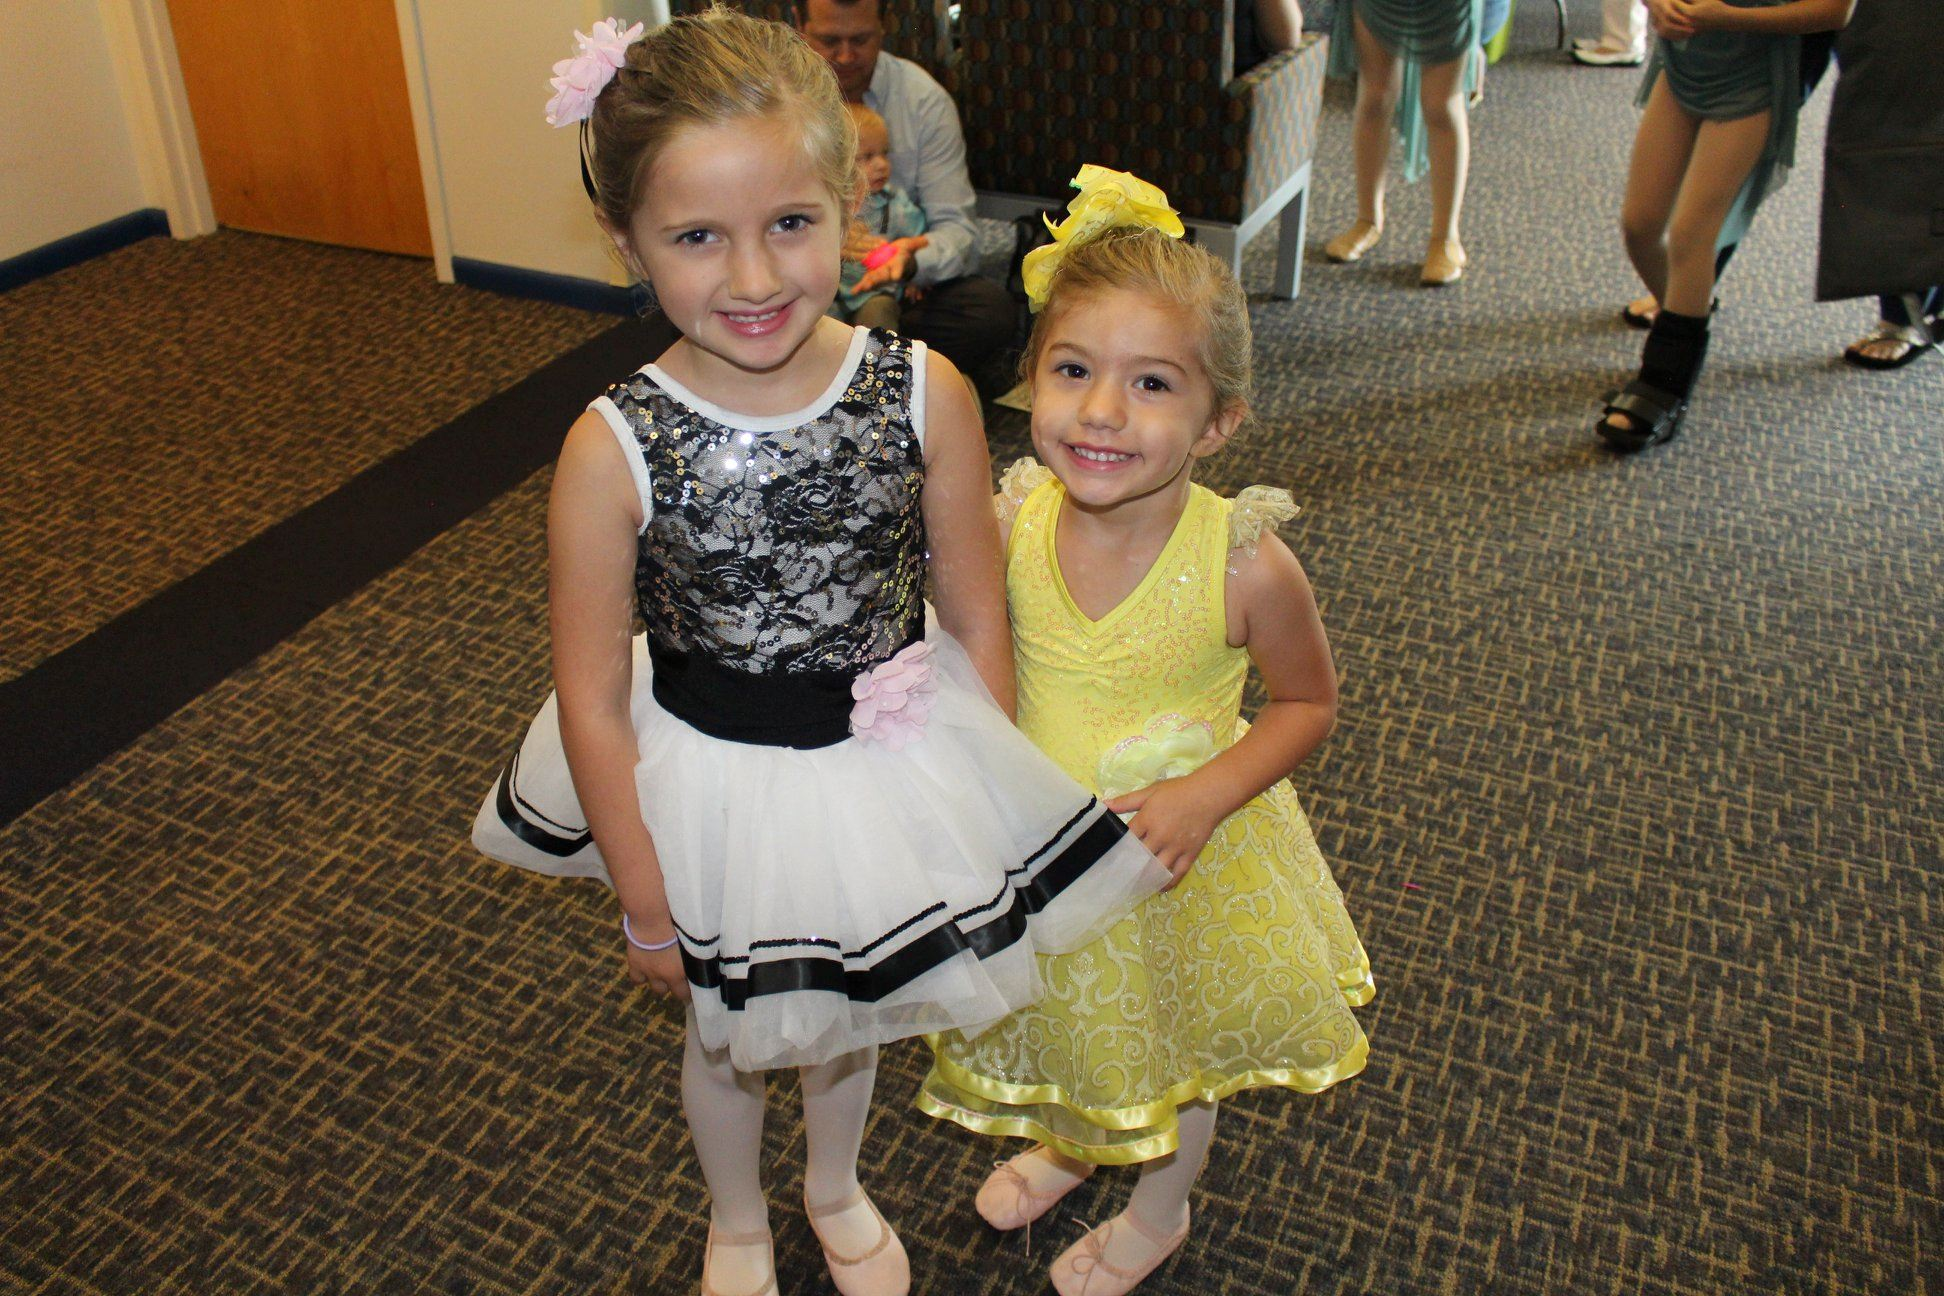 Two girls in ballet costumes